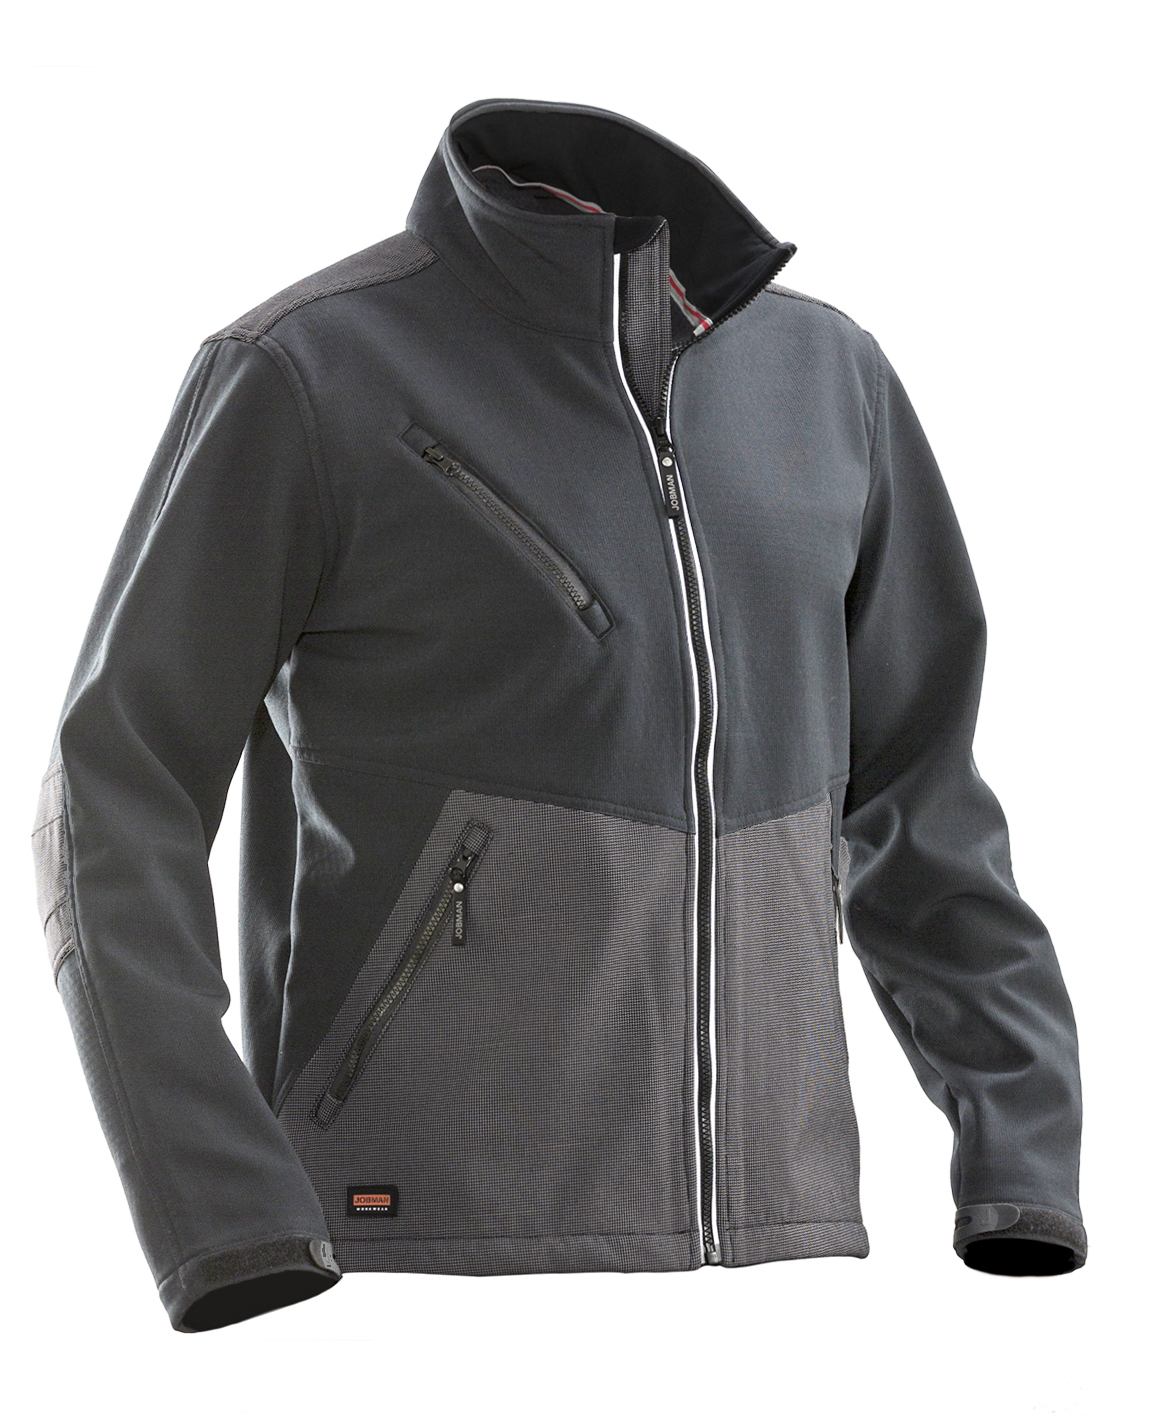 Softshell jacket advanced